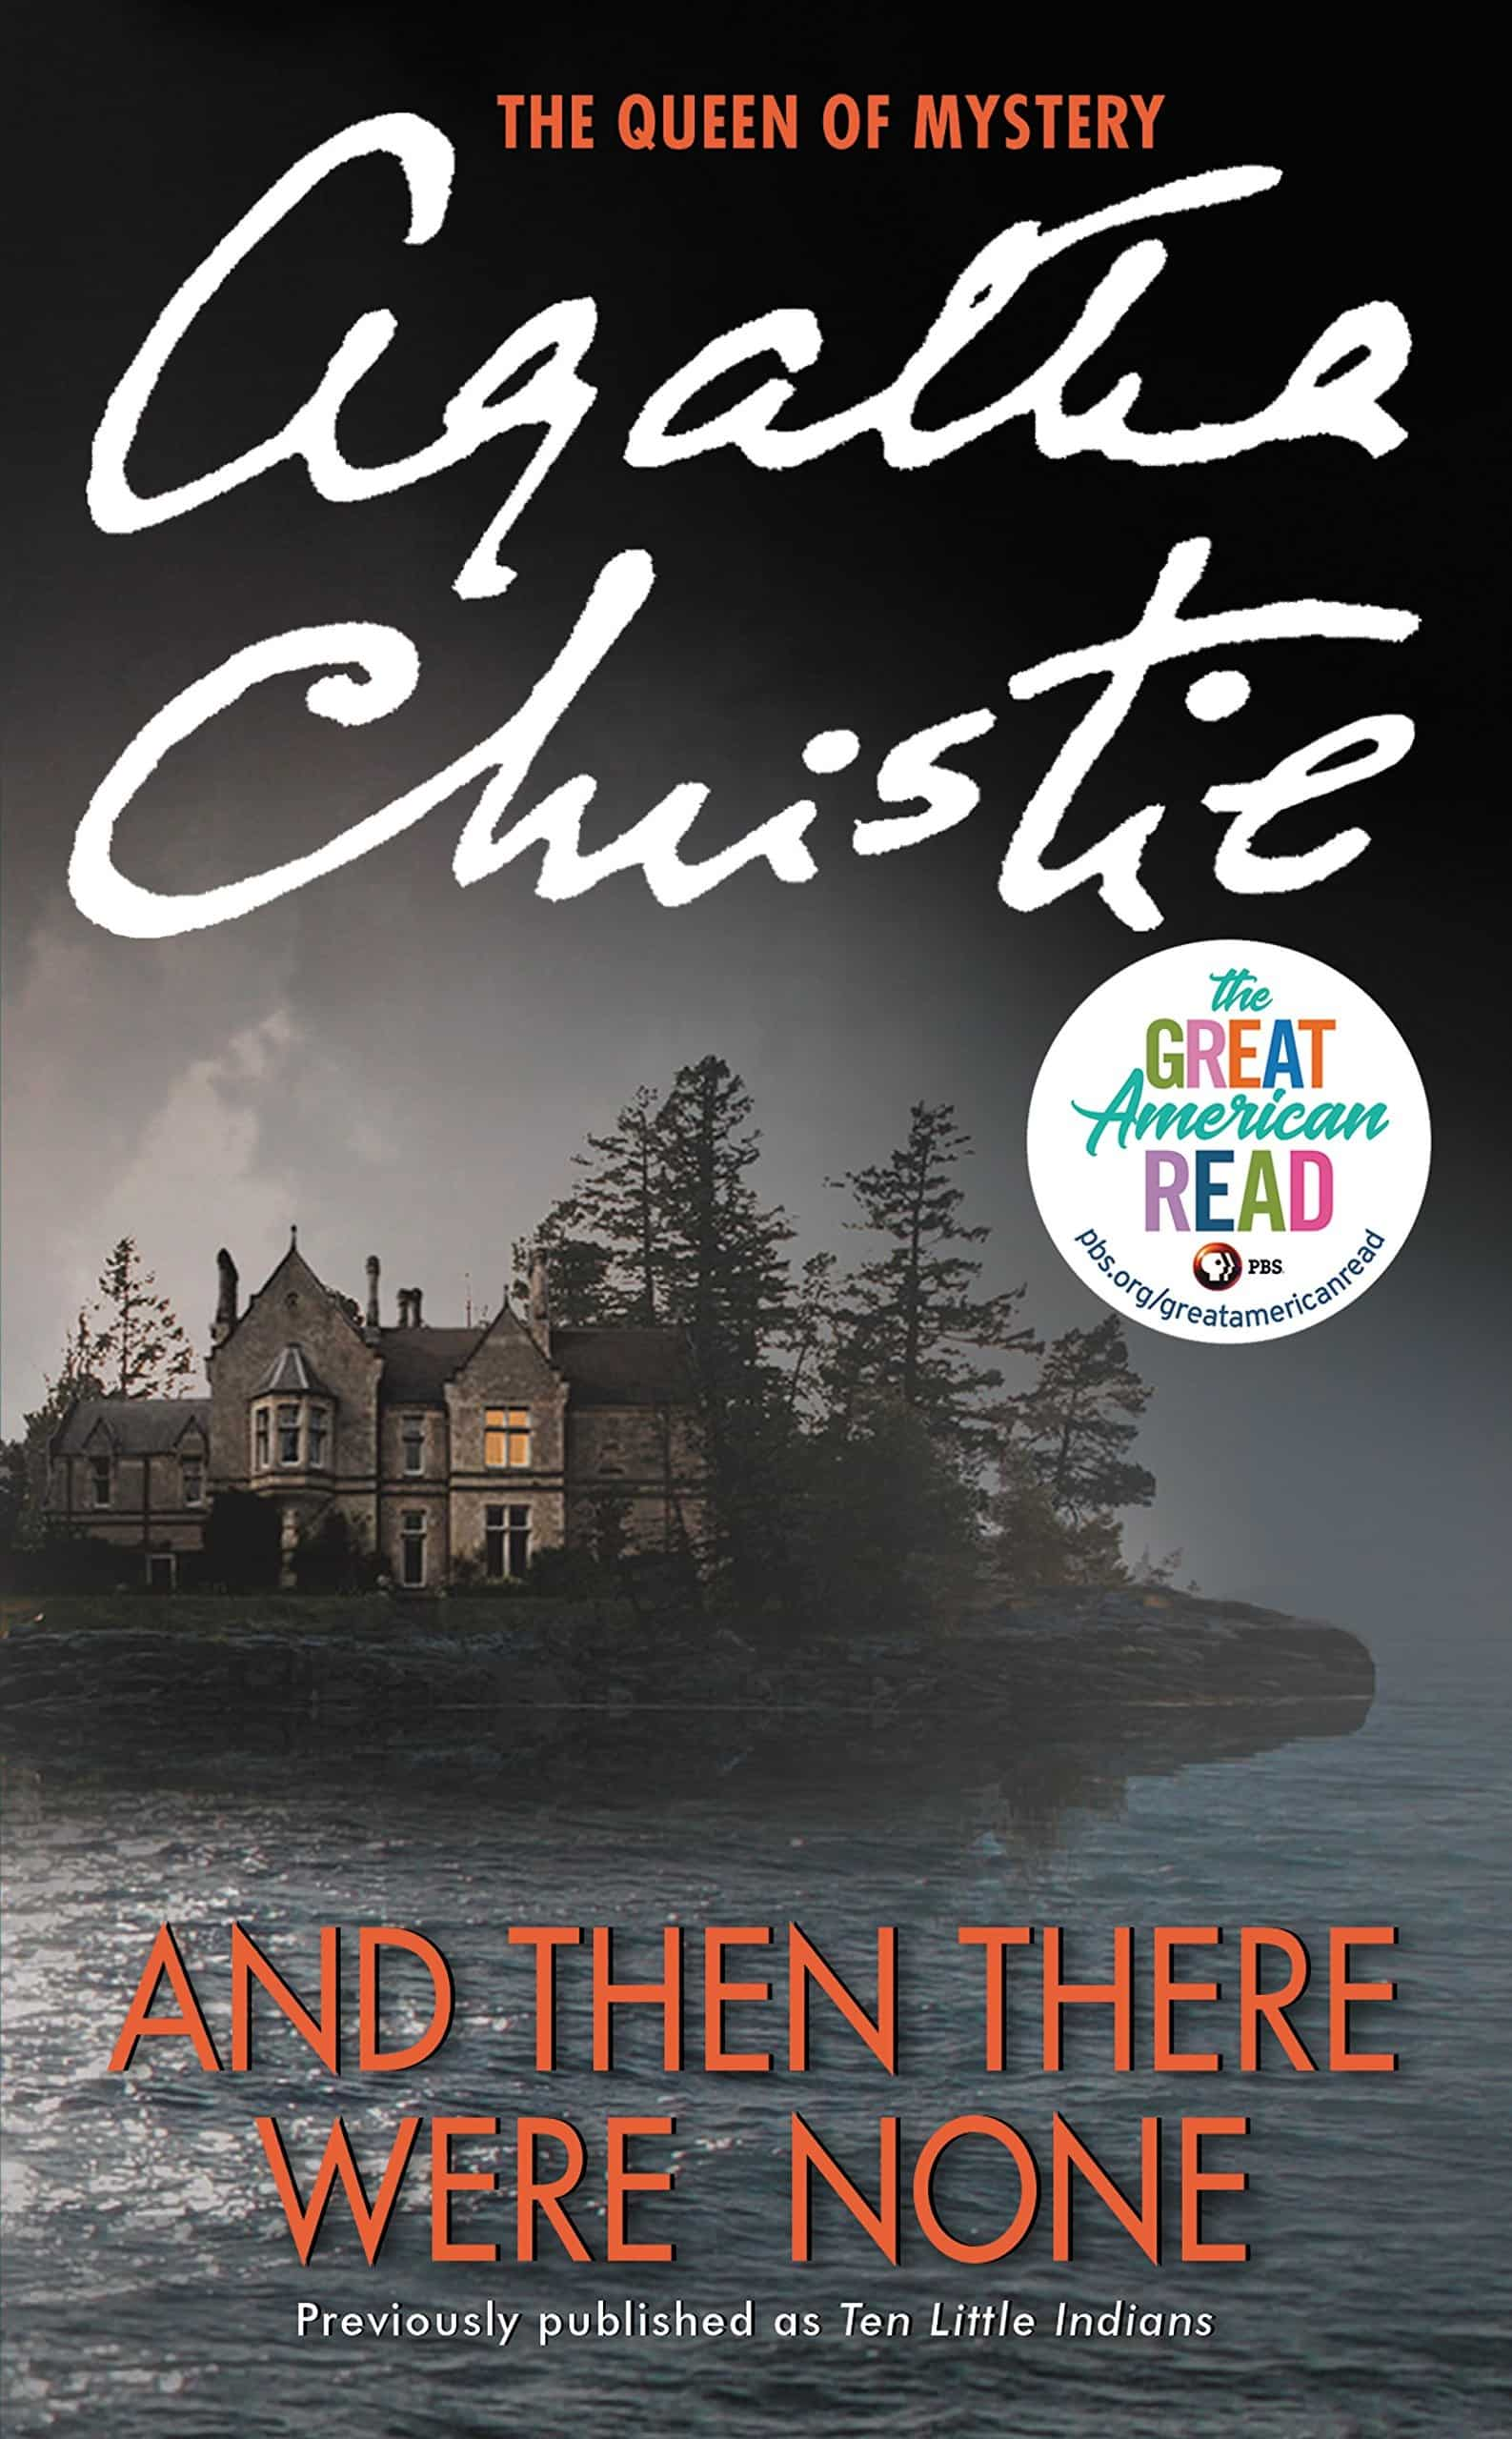 Livres pour apprendre l'anglais : And Then There Were None